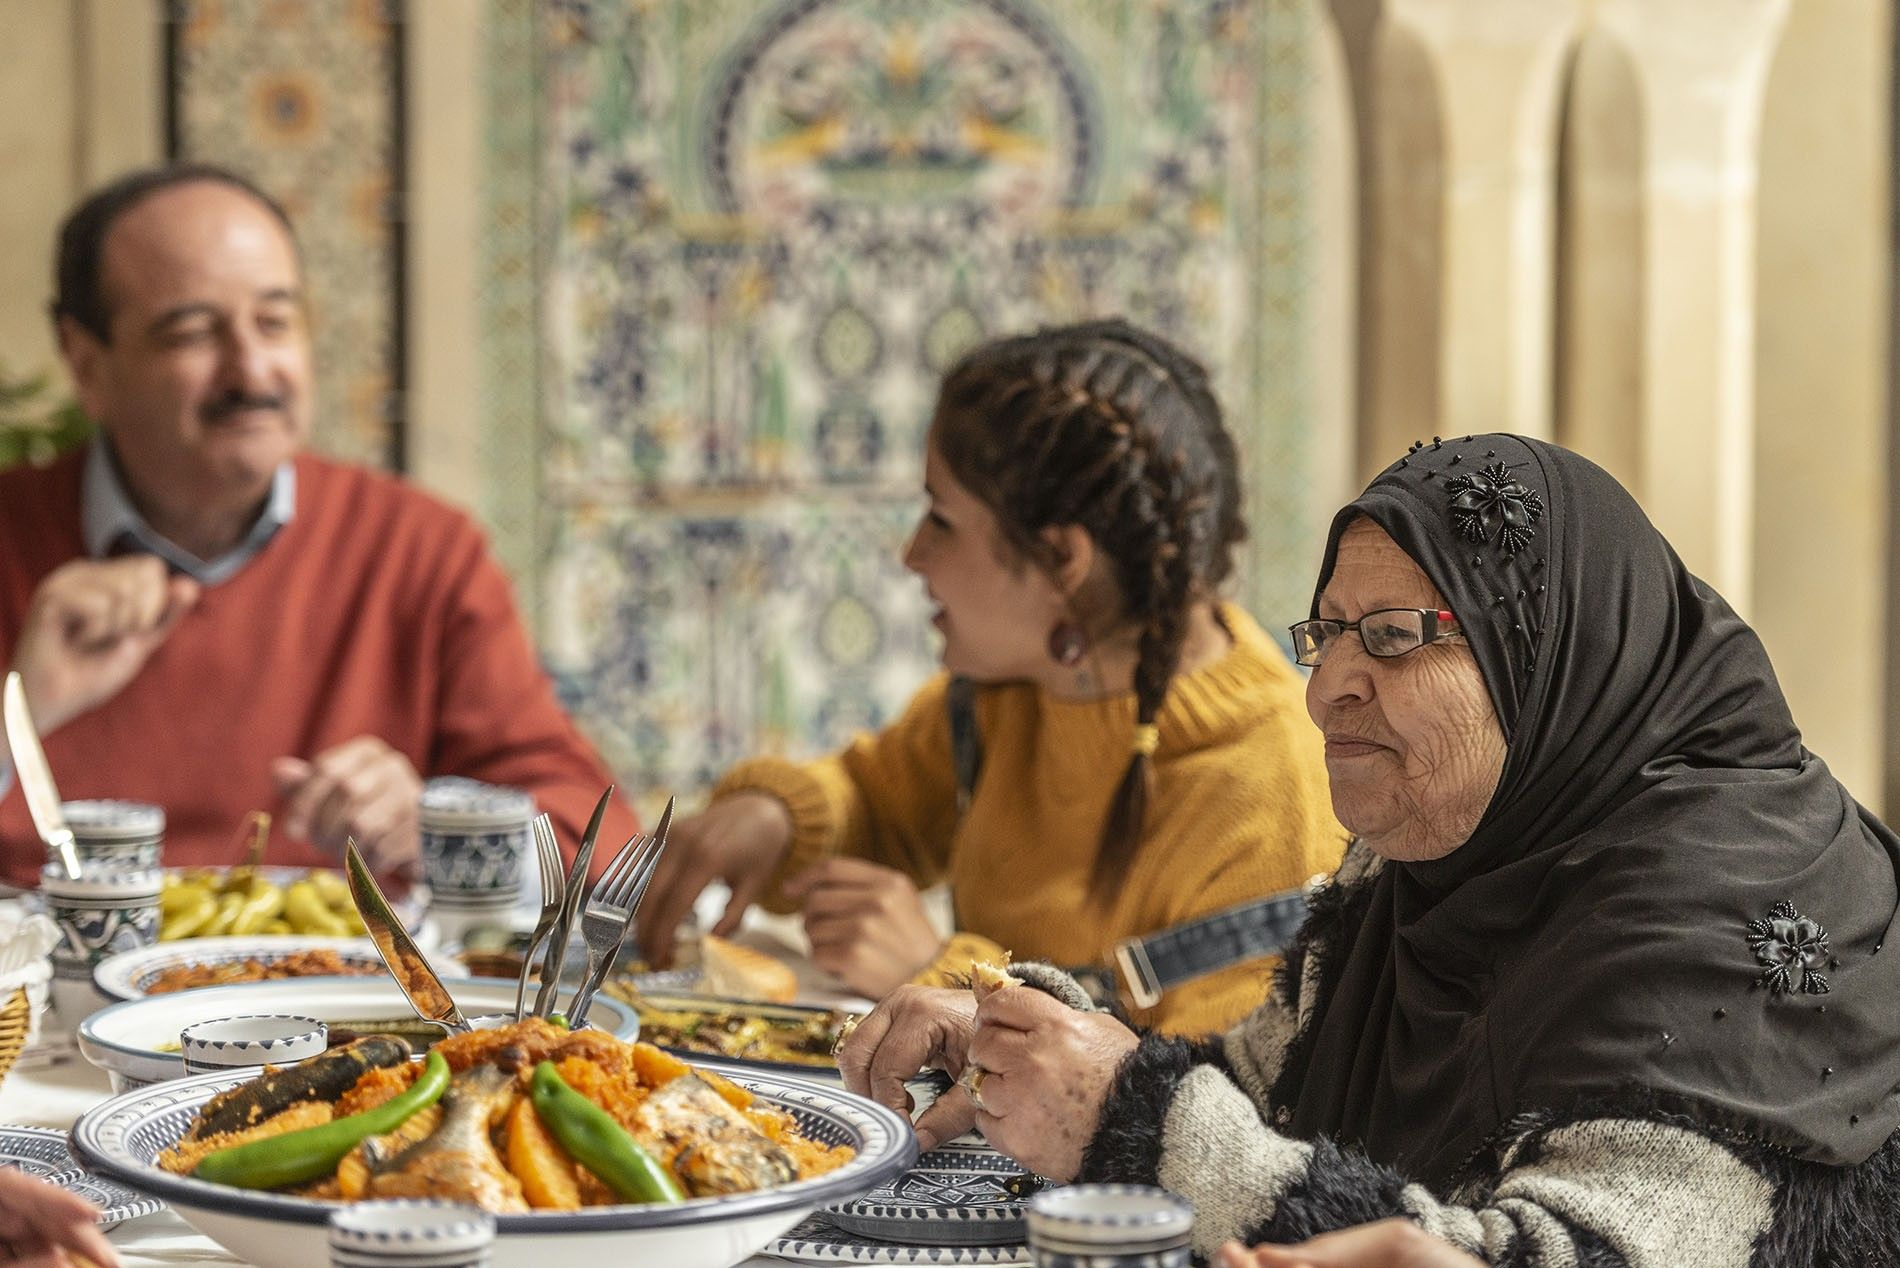 Family lunch in Nabeul, Tunisia